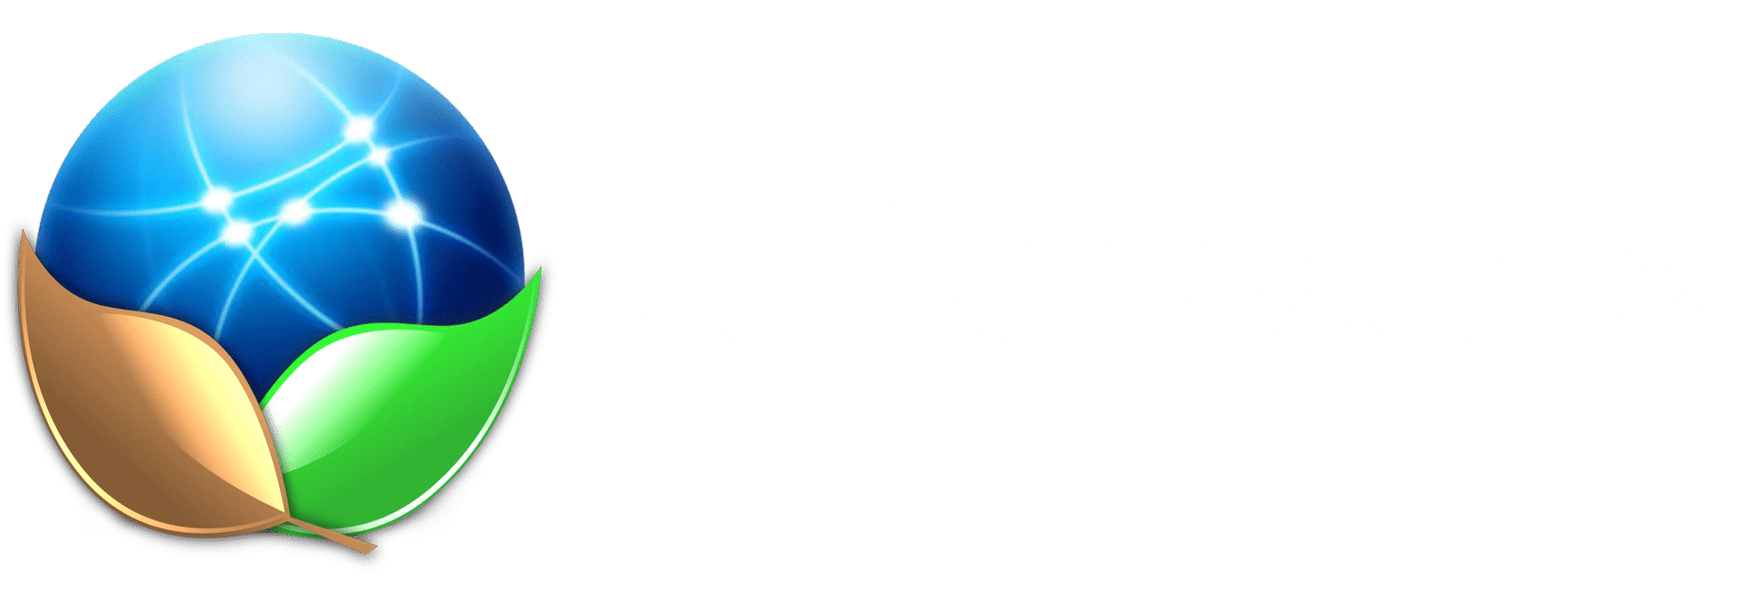 North Cyprus |   Tourism Agency Accommodations Product